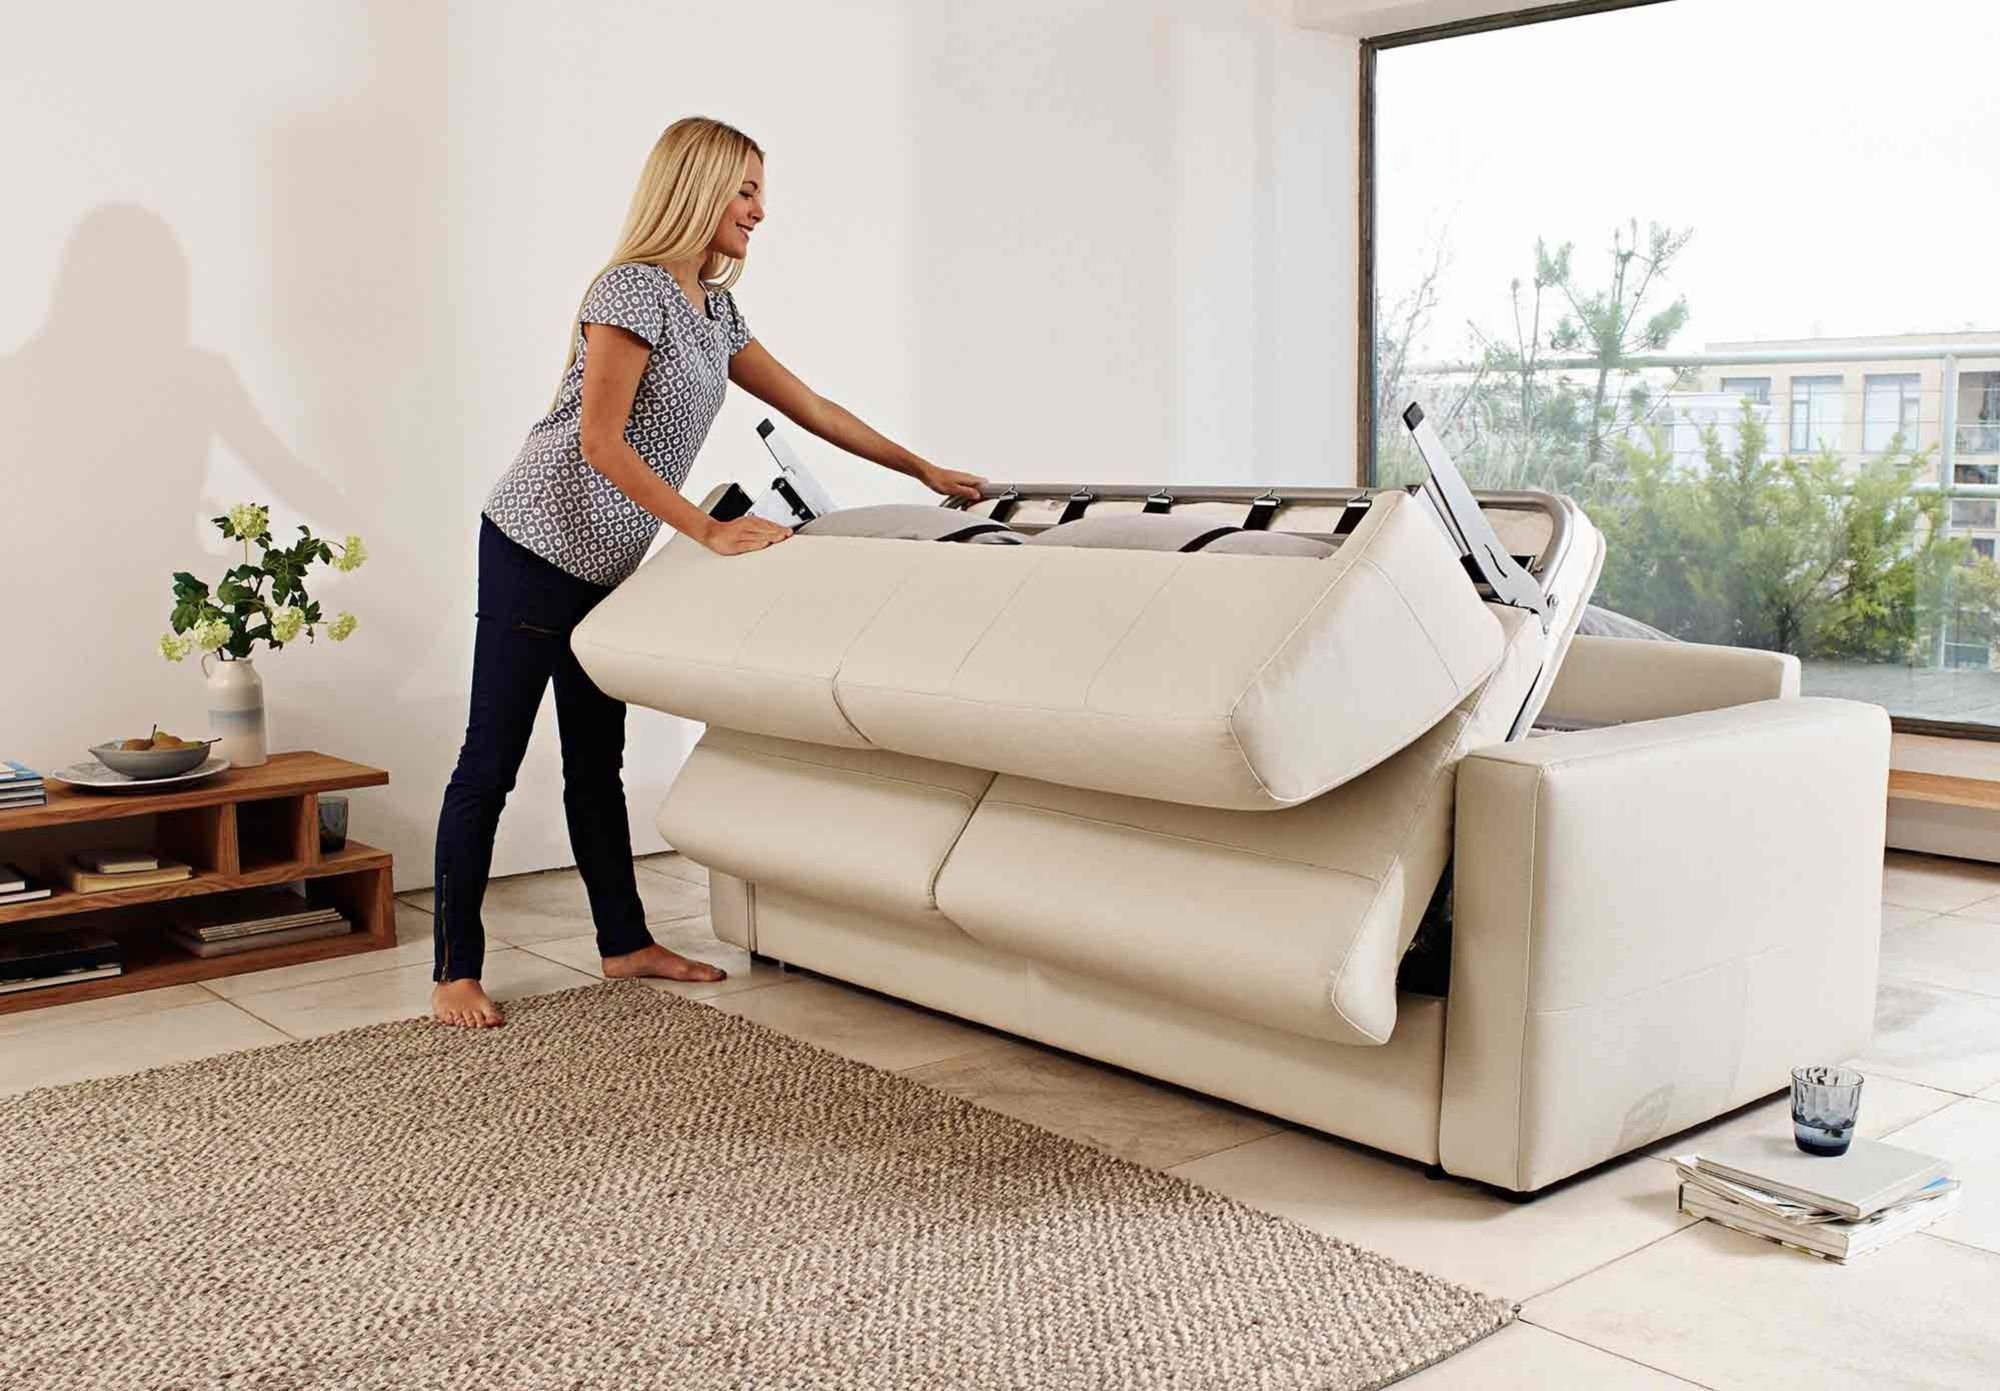 I like this modern chic sofa bed Natuzzi makes beautiful couches